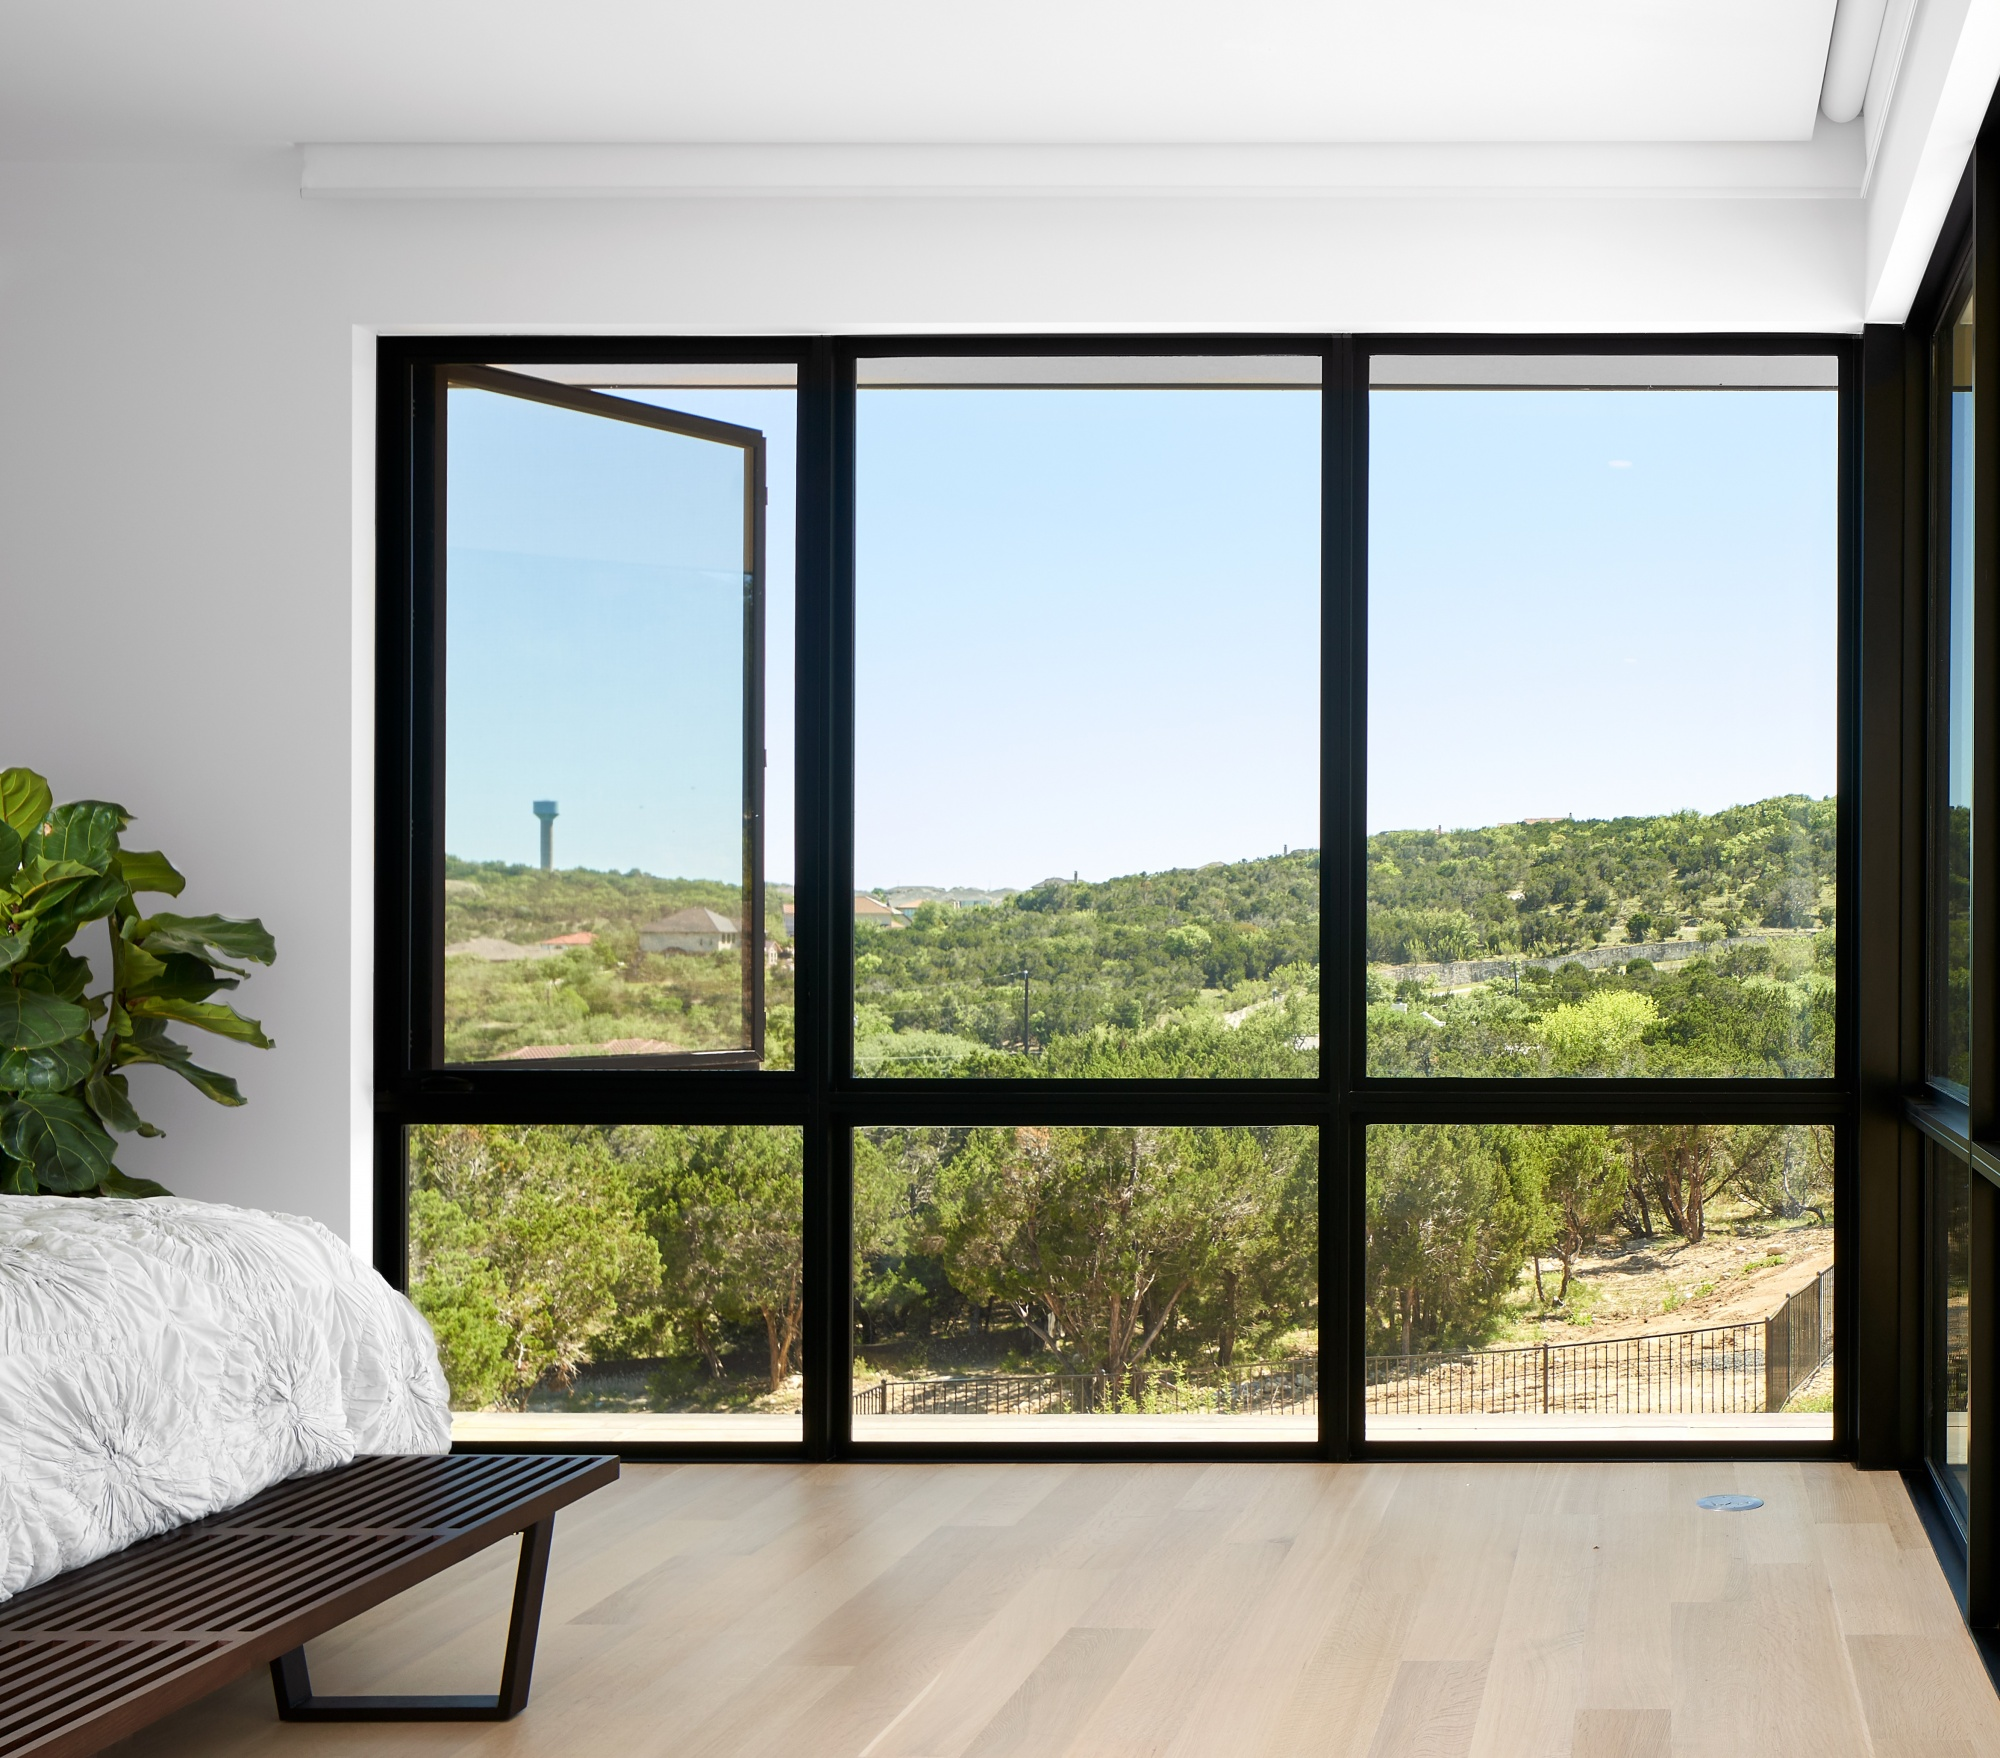 Well positioned master bedroom welcomes hill country and pool side views.